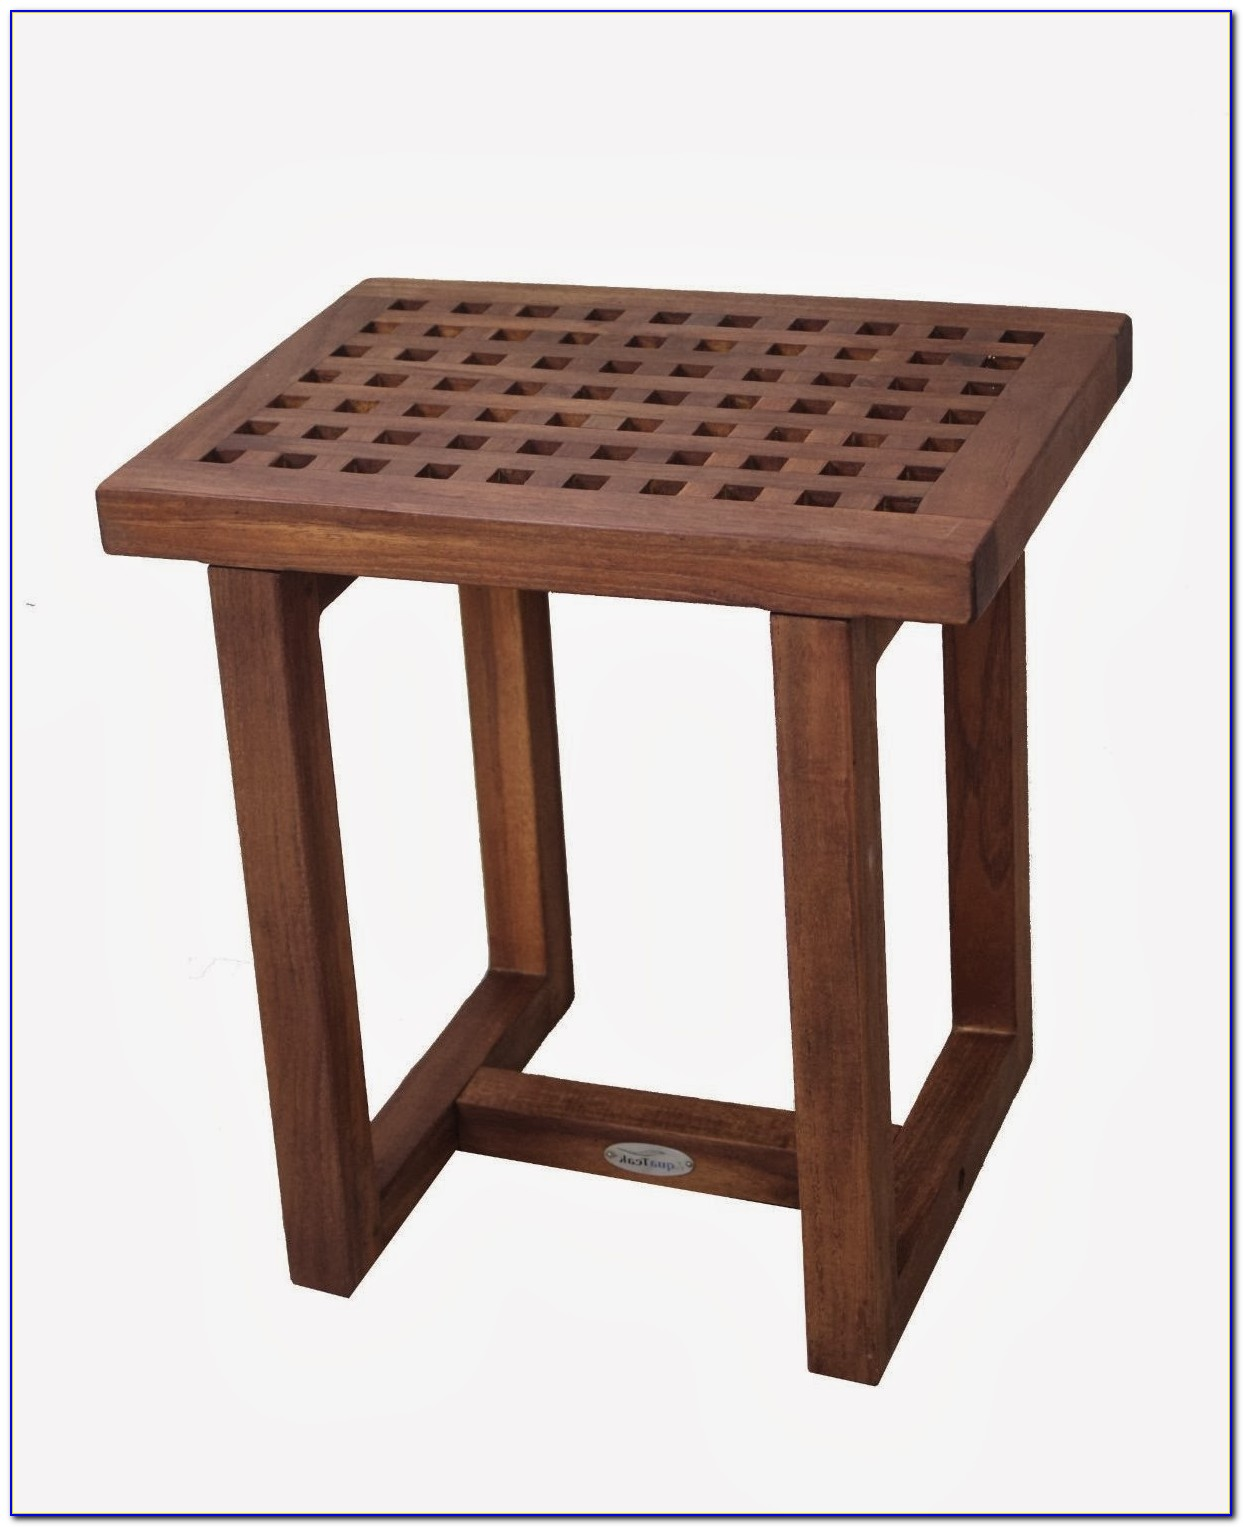 Teak Benches For Showers